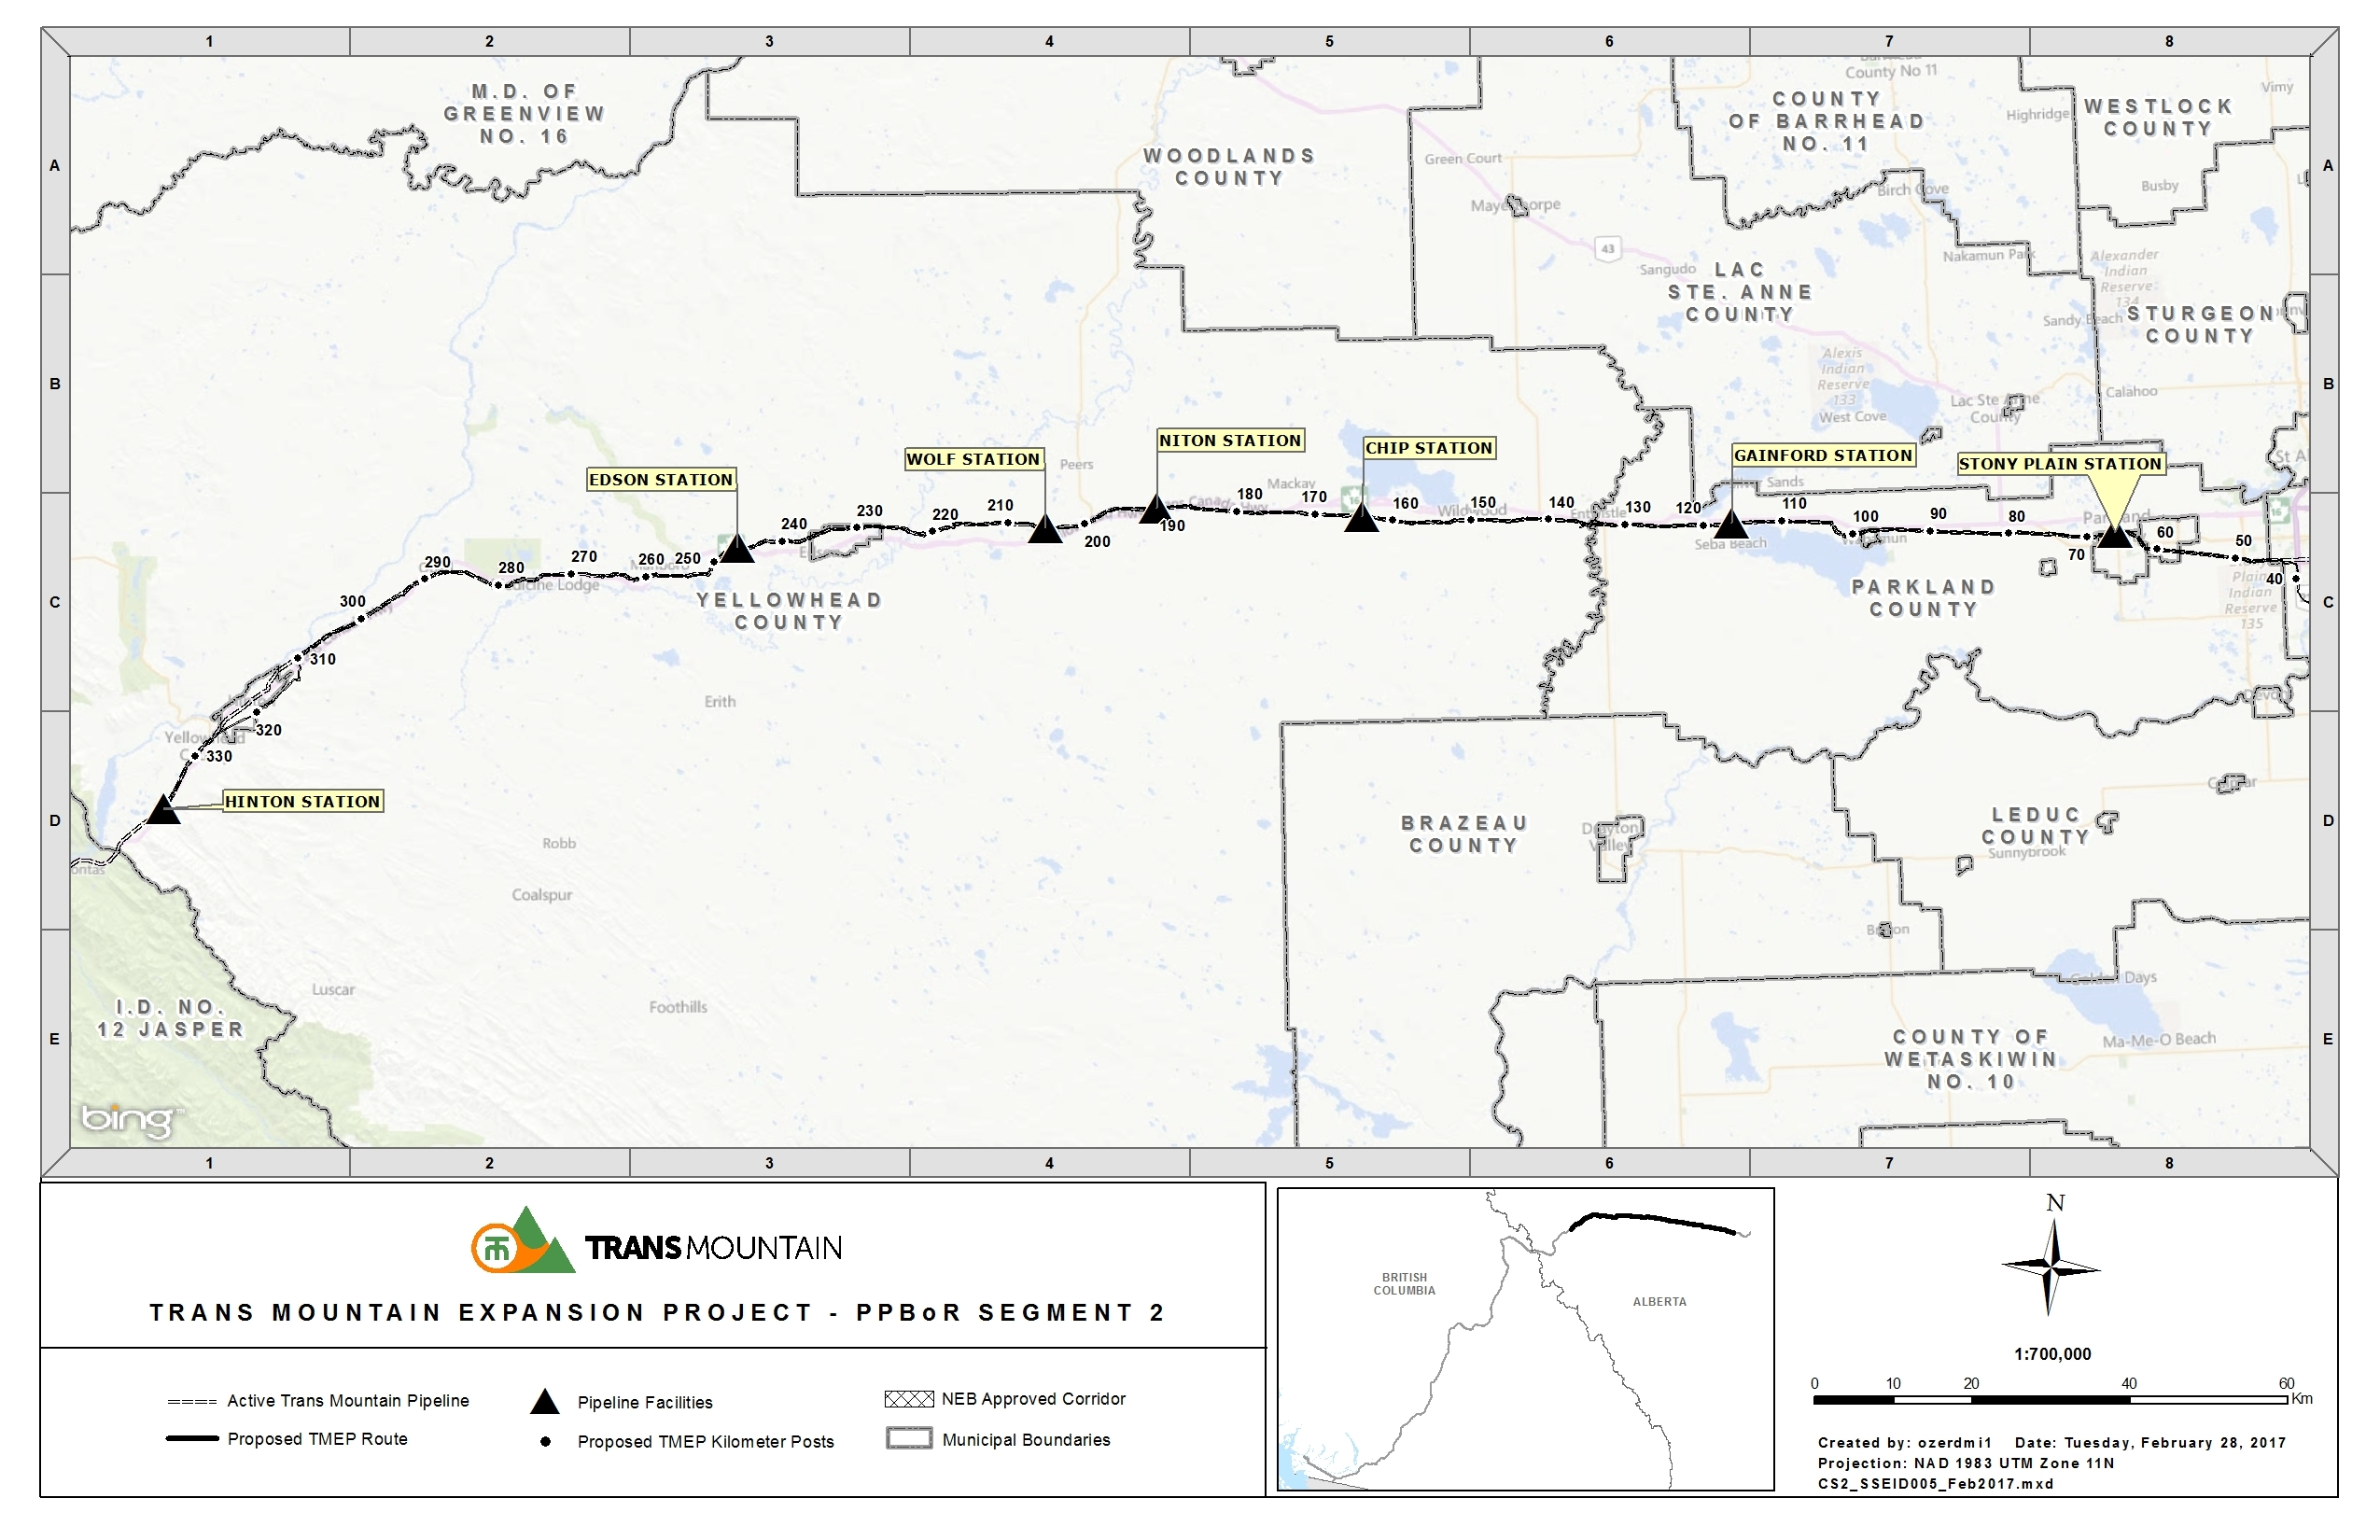 Detailed Route Trans Mountain Western Saddle Diagram Ppbor Spread 2mtime20170627042932asset953